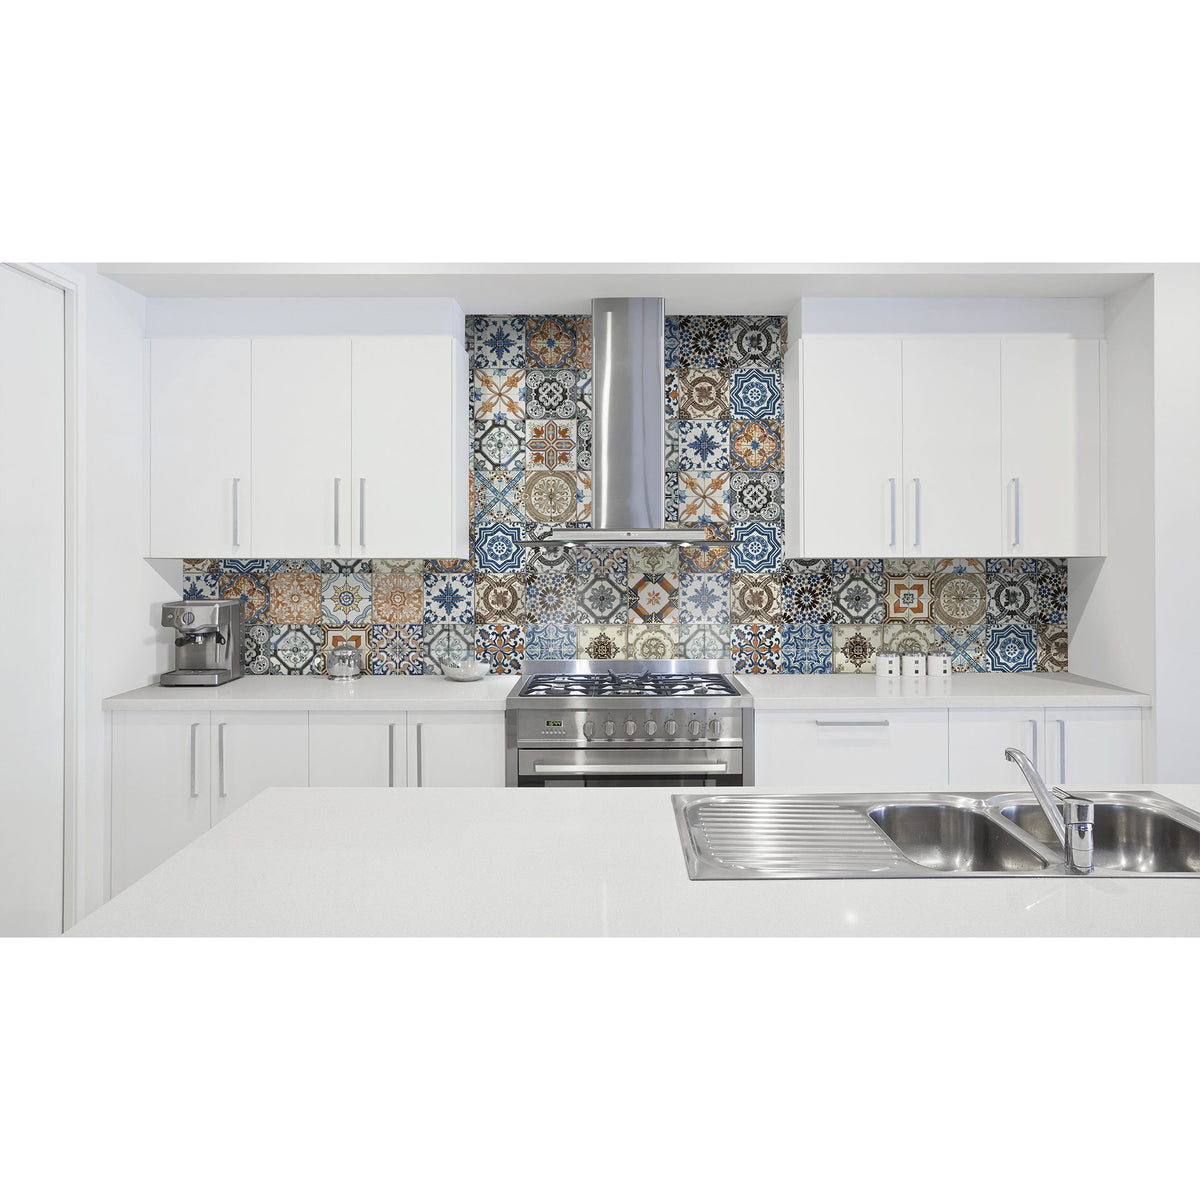 Anatolia - Marrakesh HD 8 in. x 8 in. Matte Porcelain Tile - Color Mix